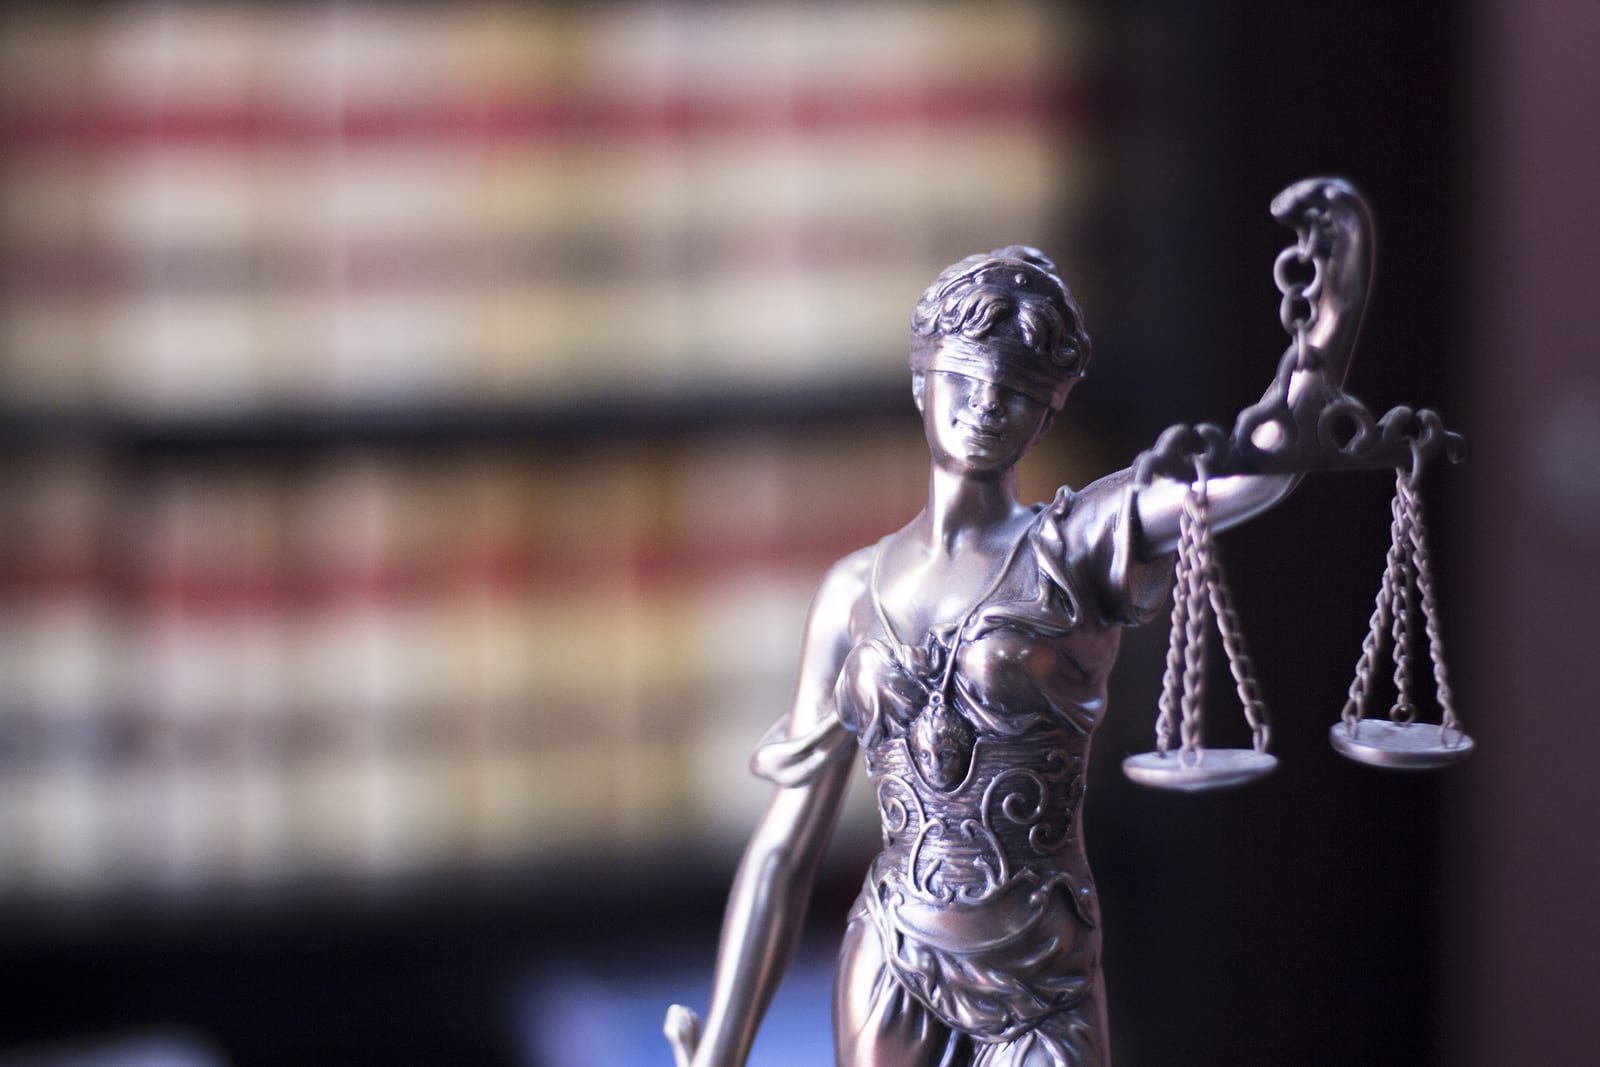 Washington News: Universal American Mortgage Company, LLC Agrees to Pay $13.2 Million to Settle False Claims Act Investigation